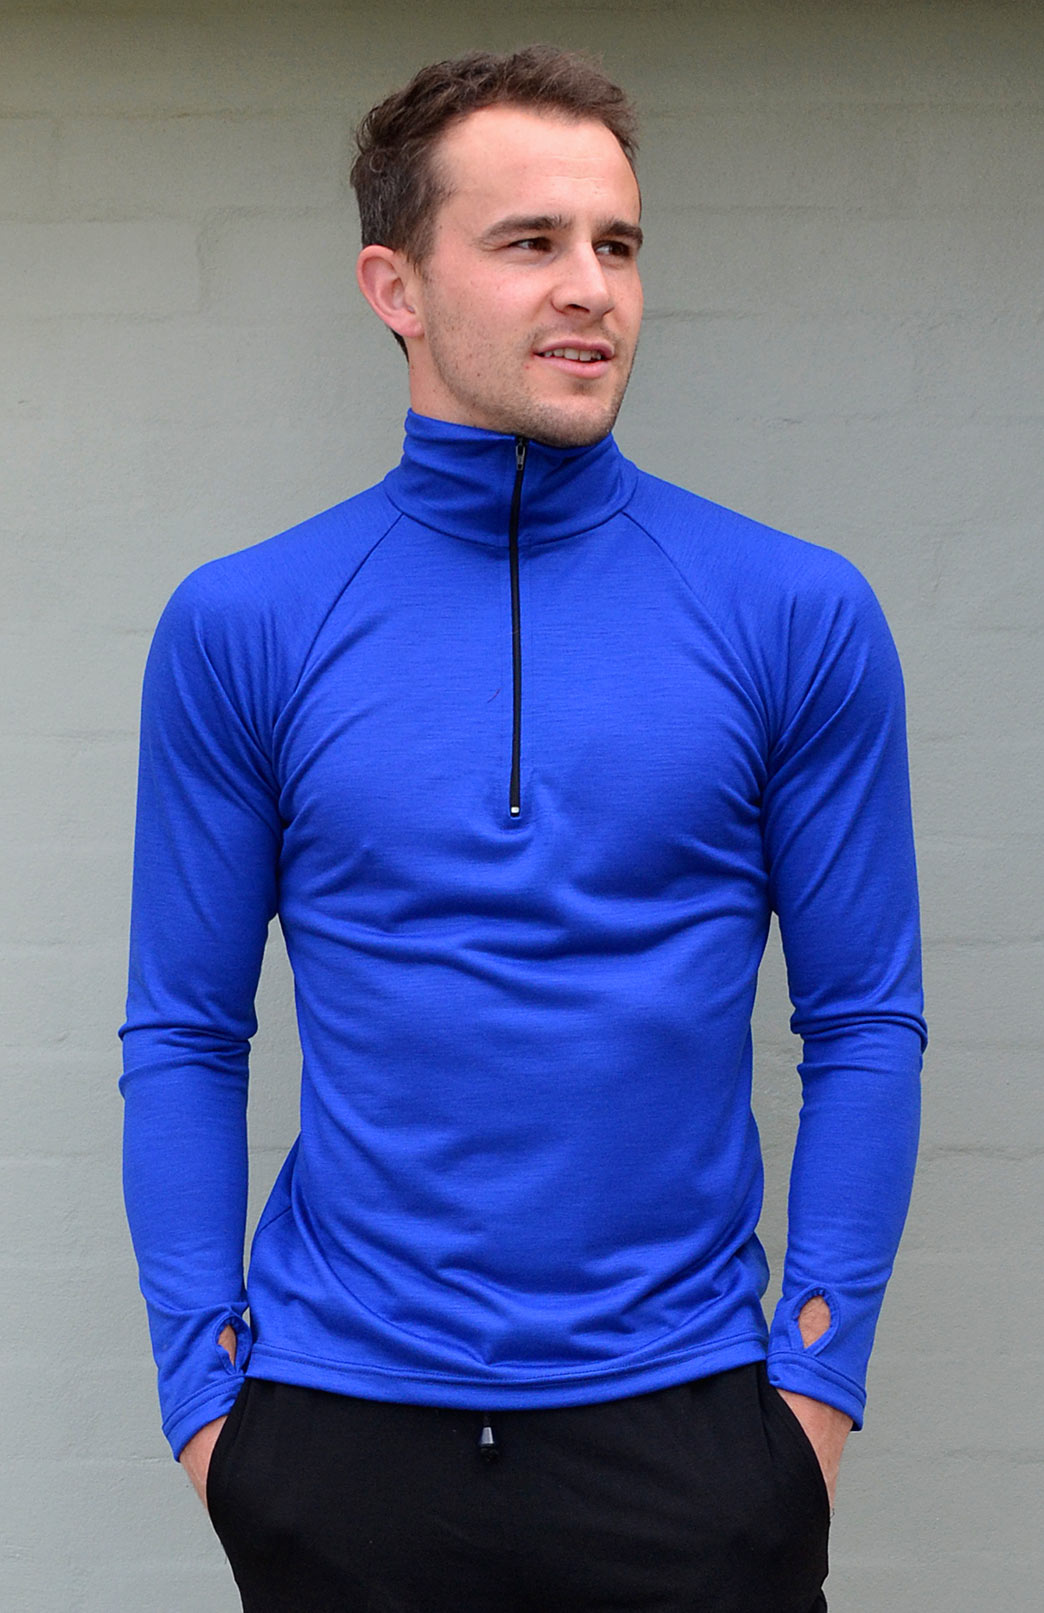 Zip Neck Top - Lightweight (~170g) - Men's Electric Blue Pure Merino Wool Zip Neck Pull Over Top with Thumb Holes - Smitten Merino Tasmania Australia